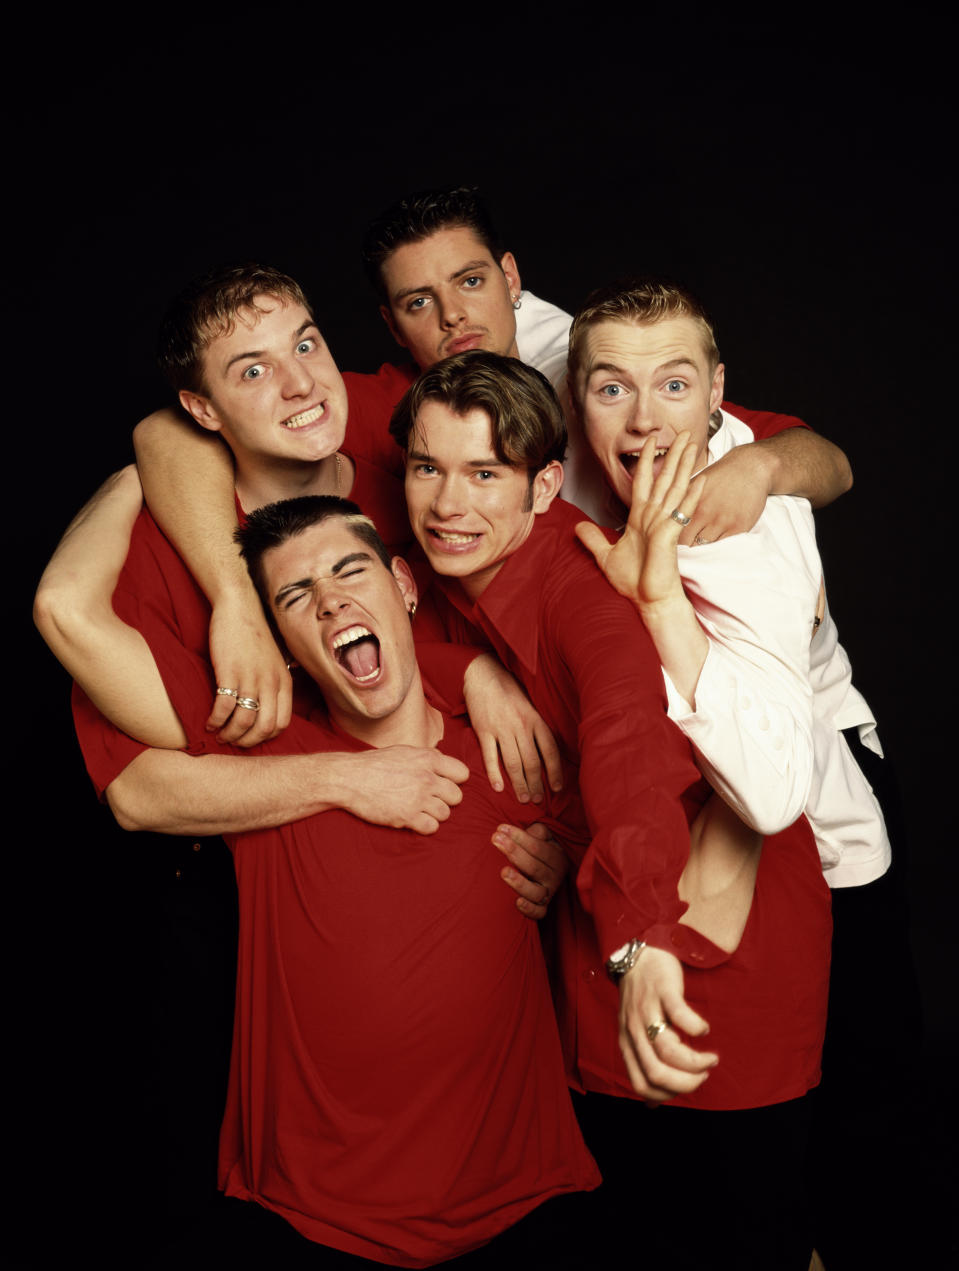 Irish boy band Boyzone, circa 1995. Clockwise from top left: Mikey Graham, Keith Duffy, Ronan Keating Stephen Gately (1976 - 2009) and Shane Lynch. (Photo by Tim Roney/Getty Images)